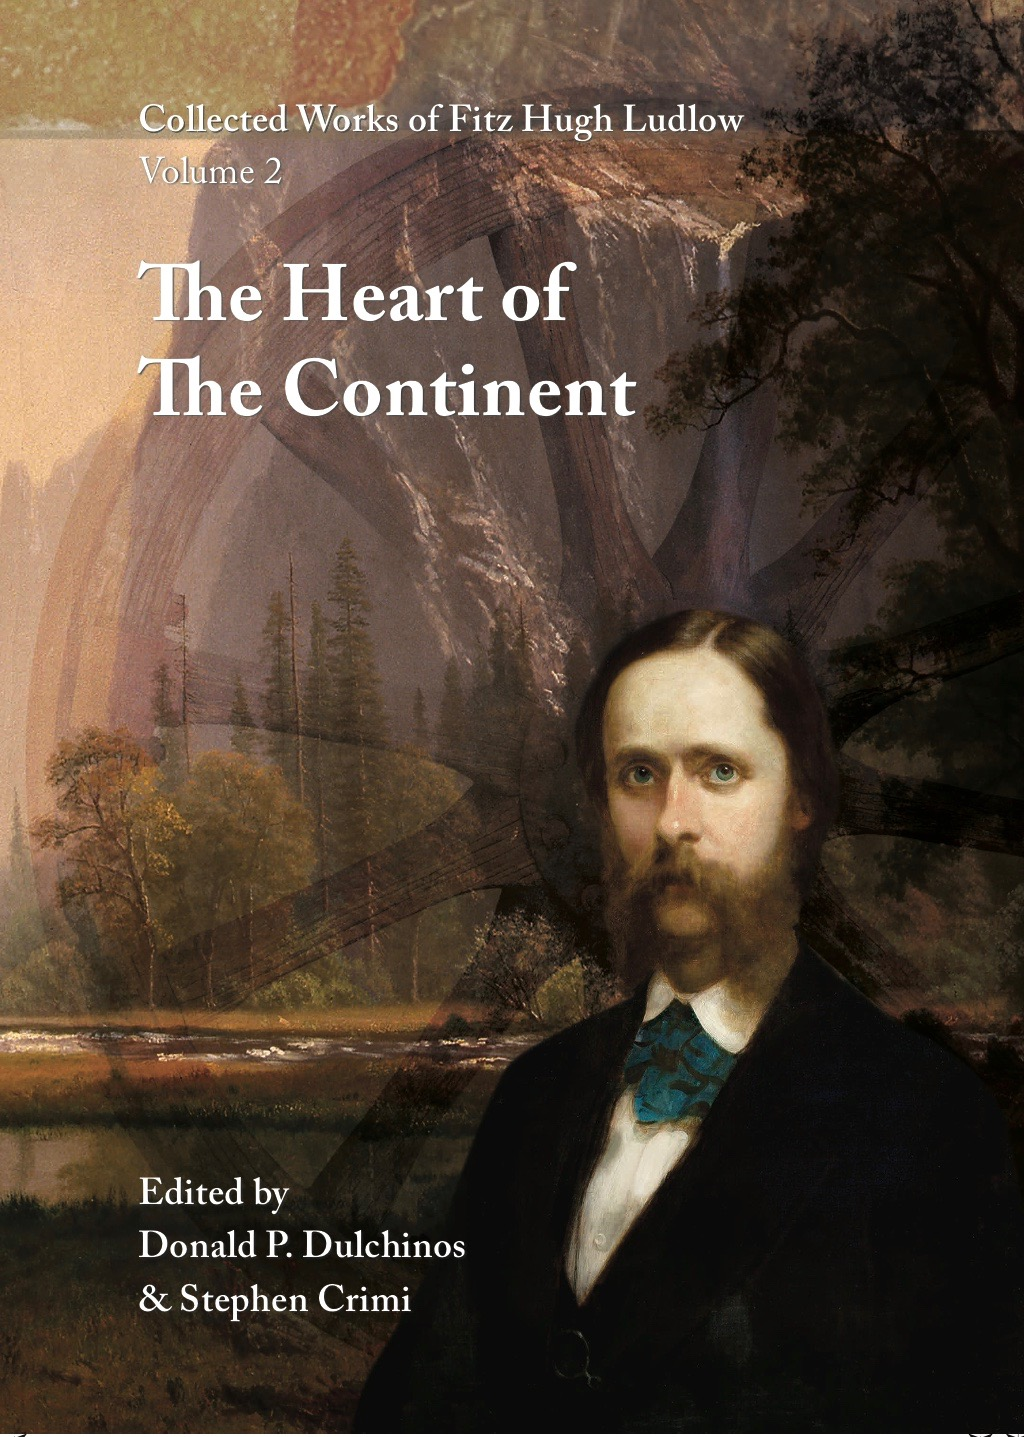 Collected Works of Fitz Hugh Ludlow, Volume 2: The Heart of the Continent